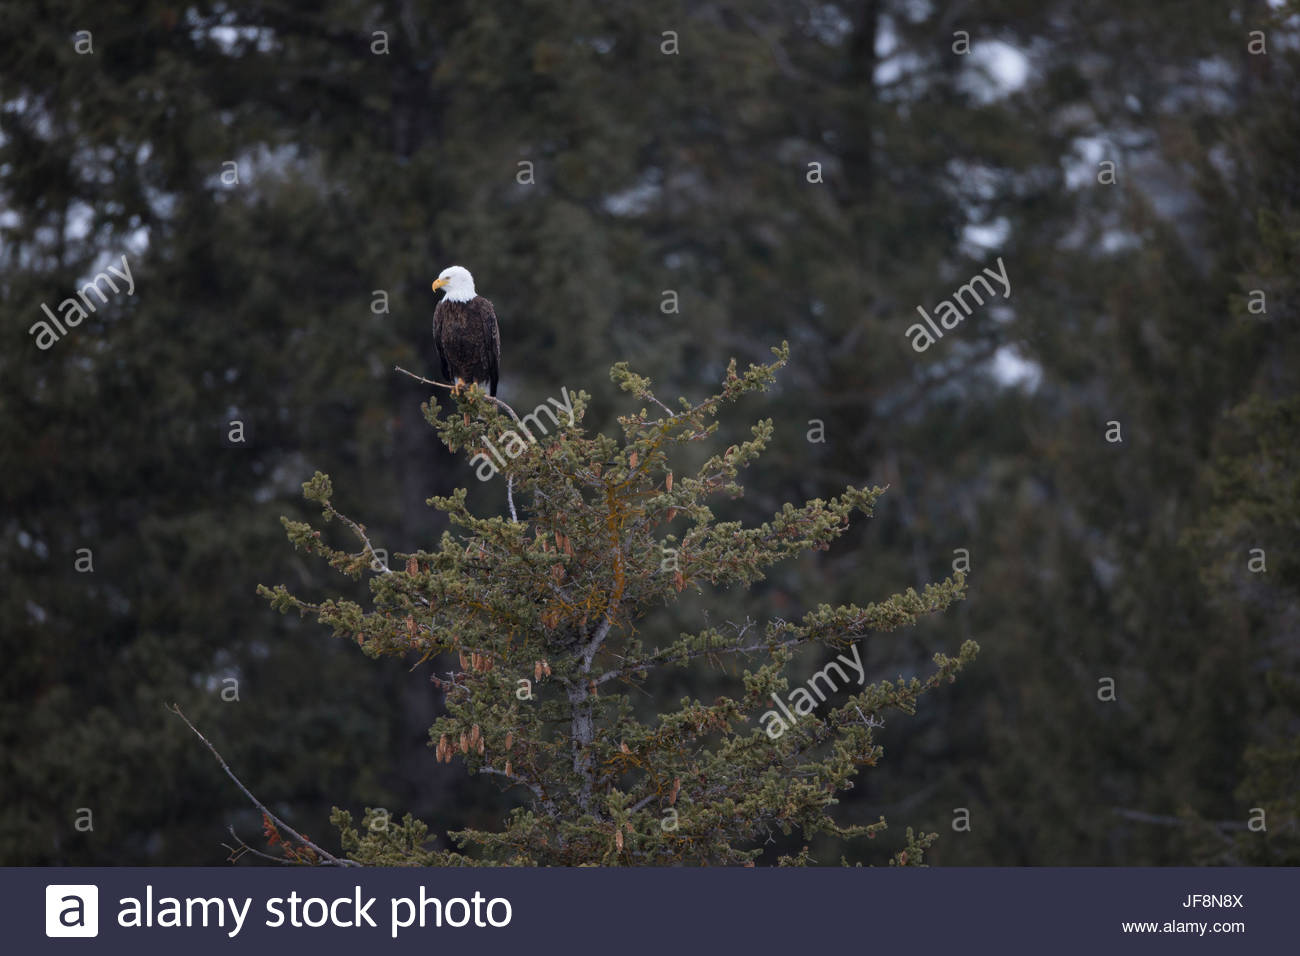 A bald eagle, Haliaeetus leucocephalus, perched in the top of a conifer. - Stock Image